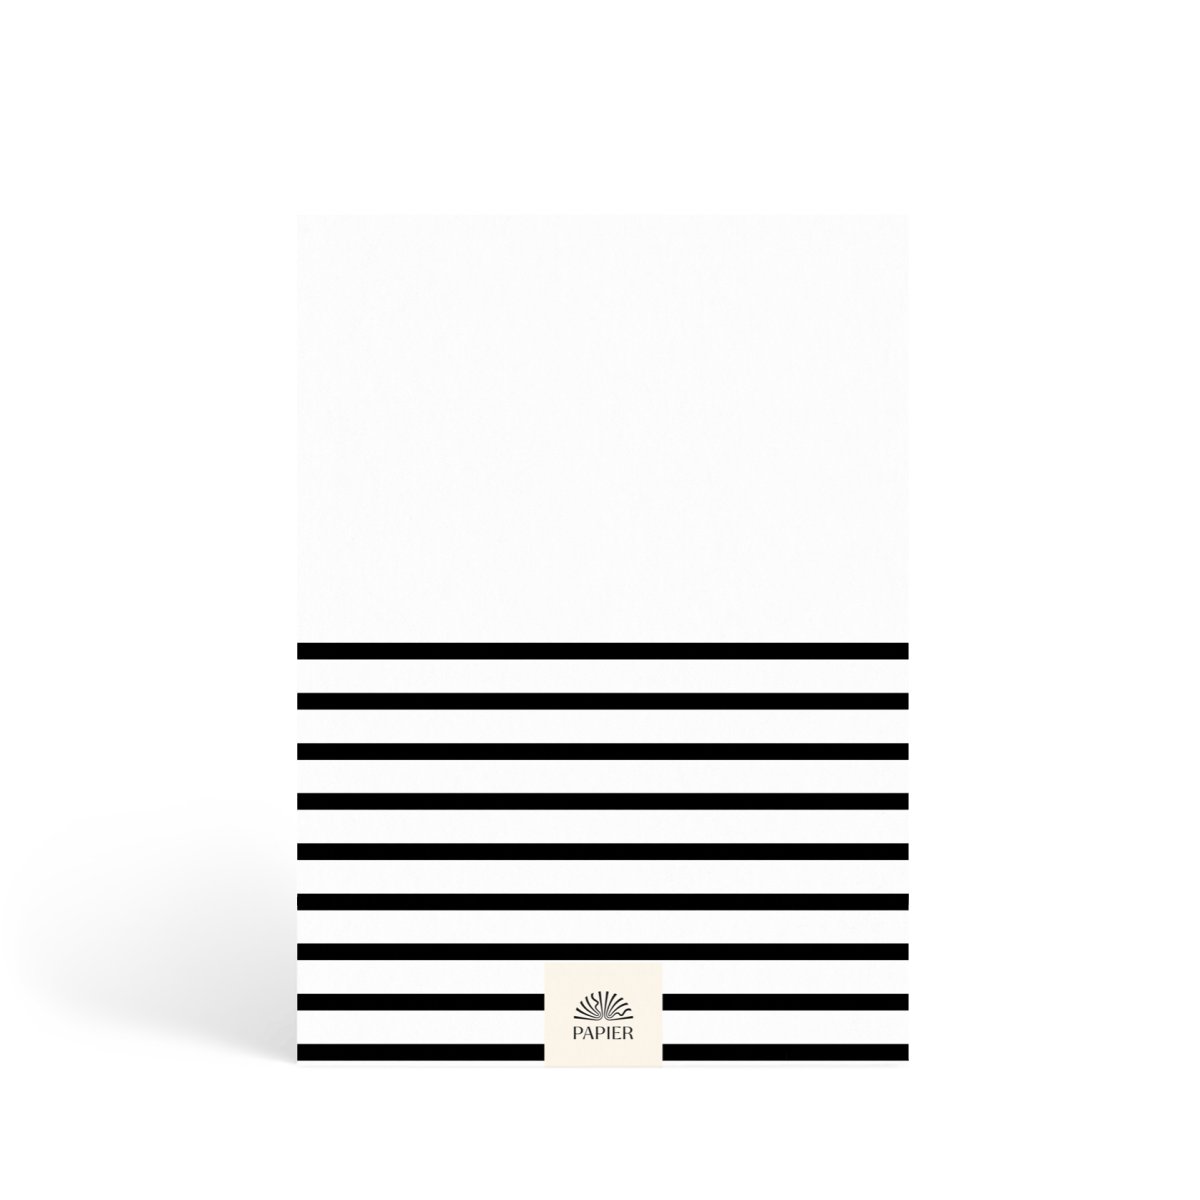 Https%3a%2f%2fwww.papier.com%2fproduct image%2f47998%2f5%2fdemi stripe 11760 arriere 1539096201.png?ixlib=rb 1.1